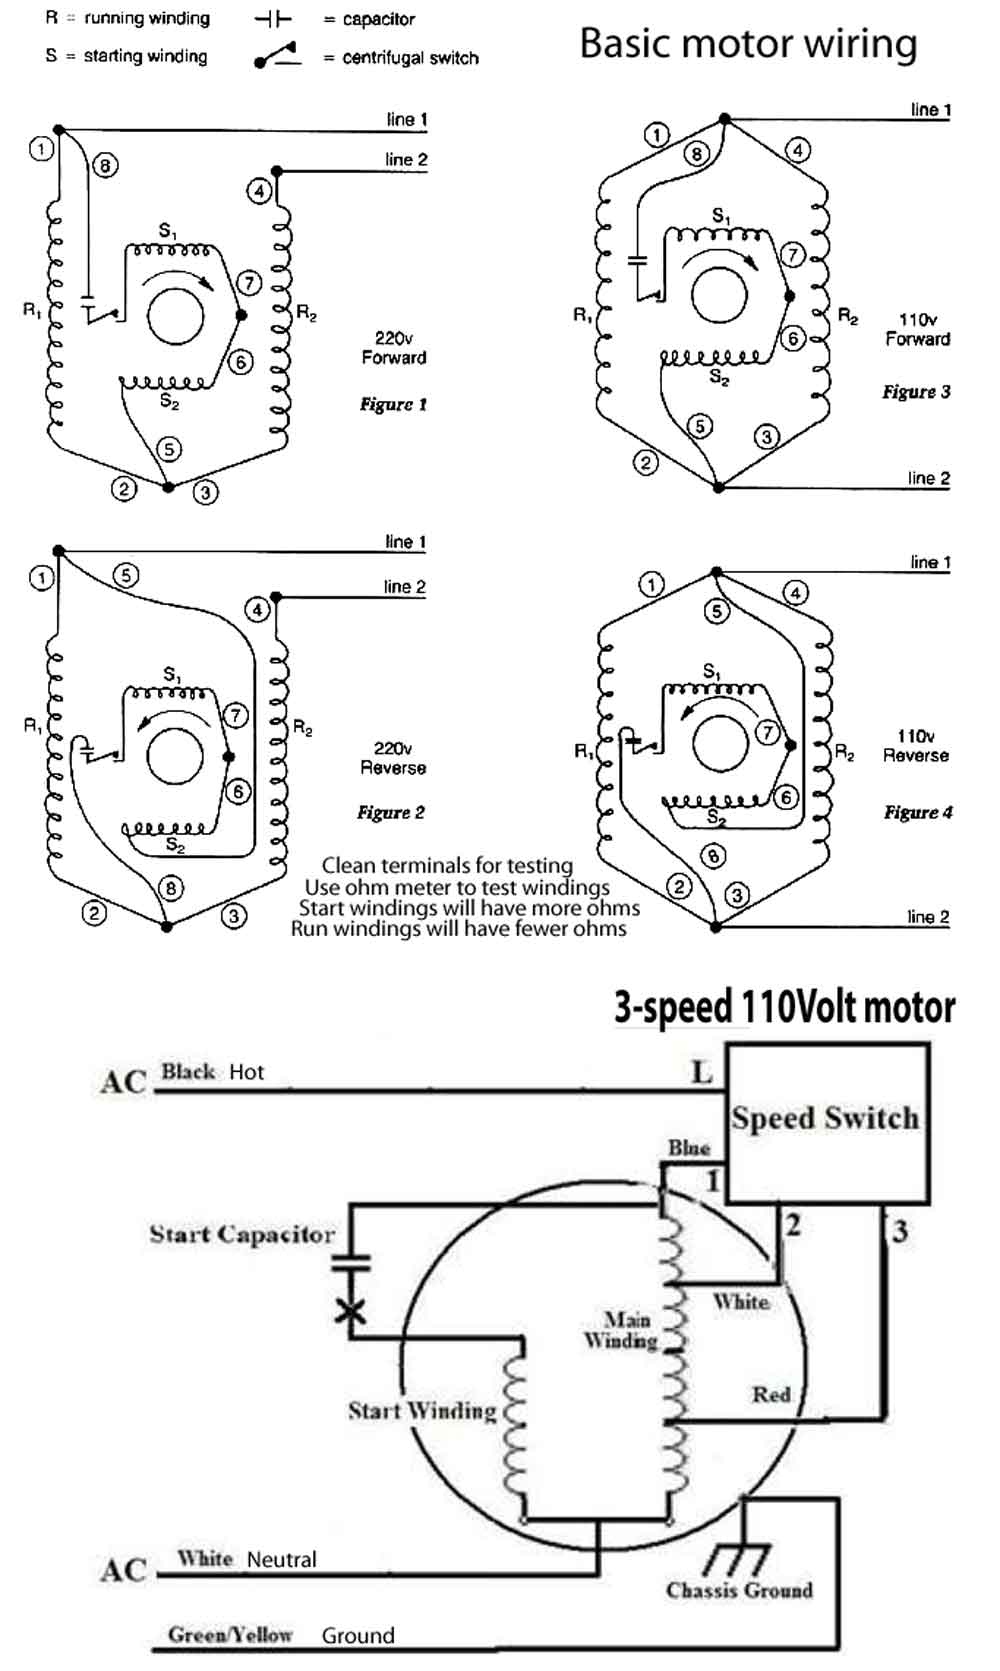 2 Speed Fan Switch Wiring Diagram from annawiringdiagram.com